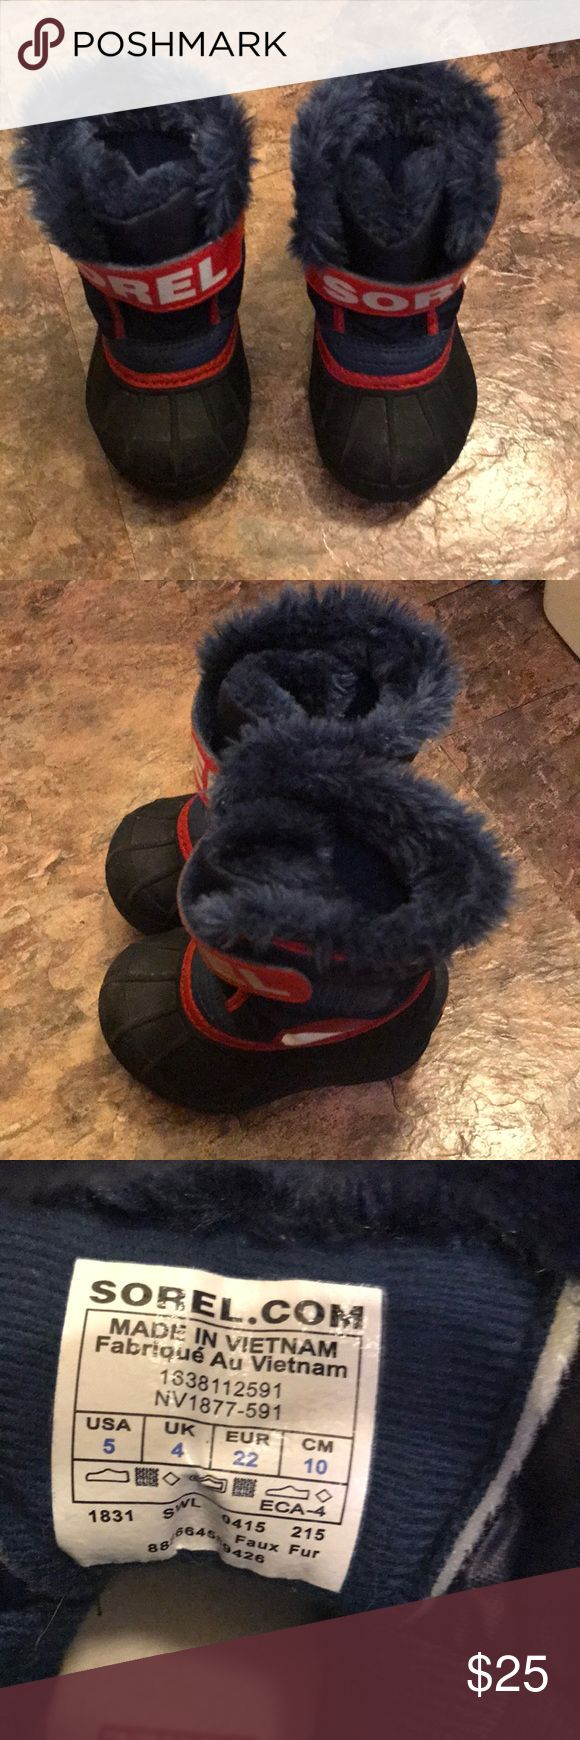 Sorel boots Like brand new. Toddler size 5 Sorel Shoes Boots